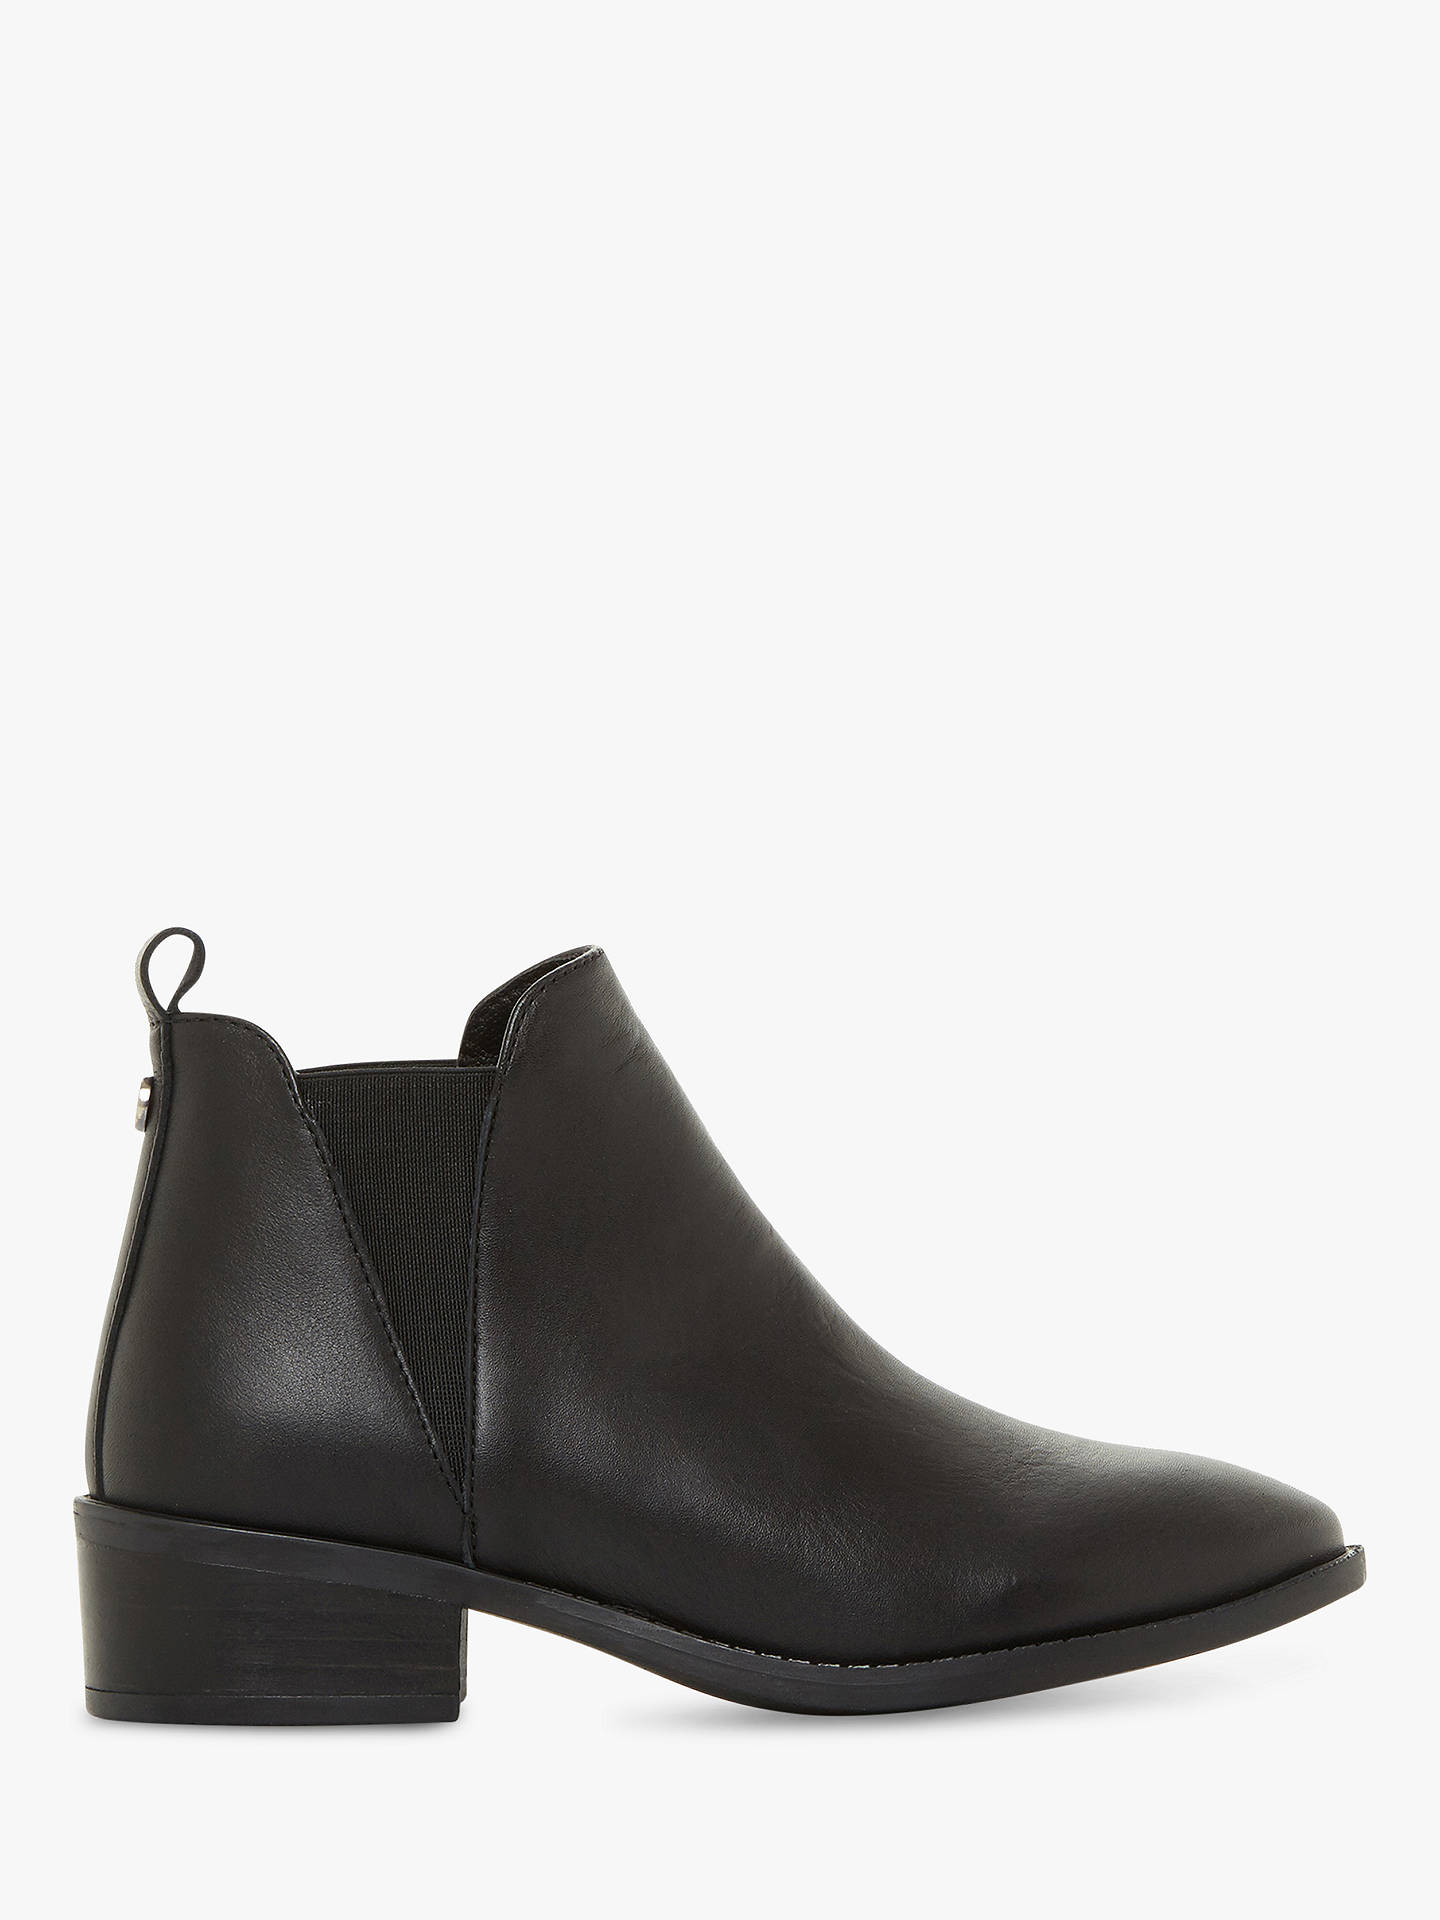 134499014ea Buy Steve Madden Dante Pull On Ankle Boots